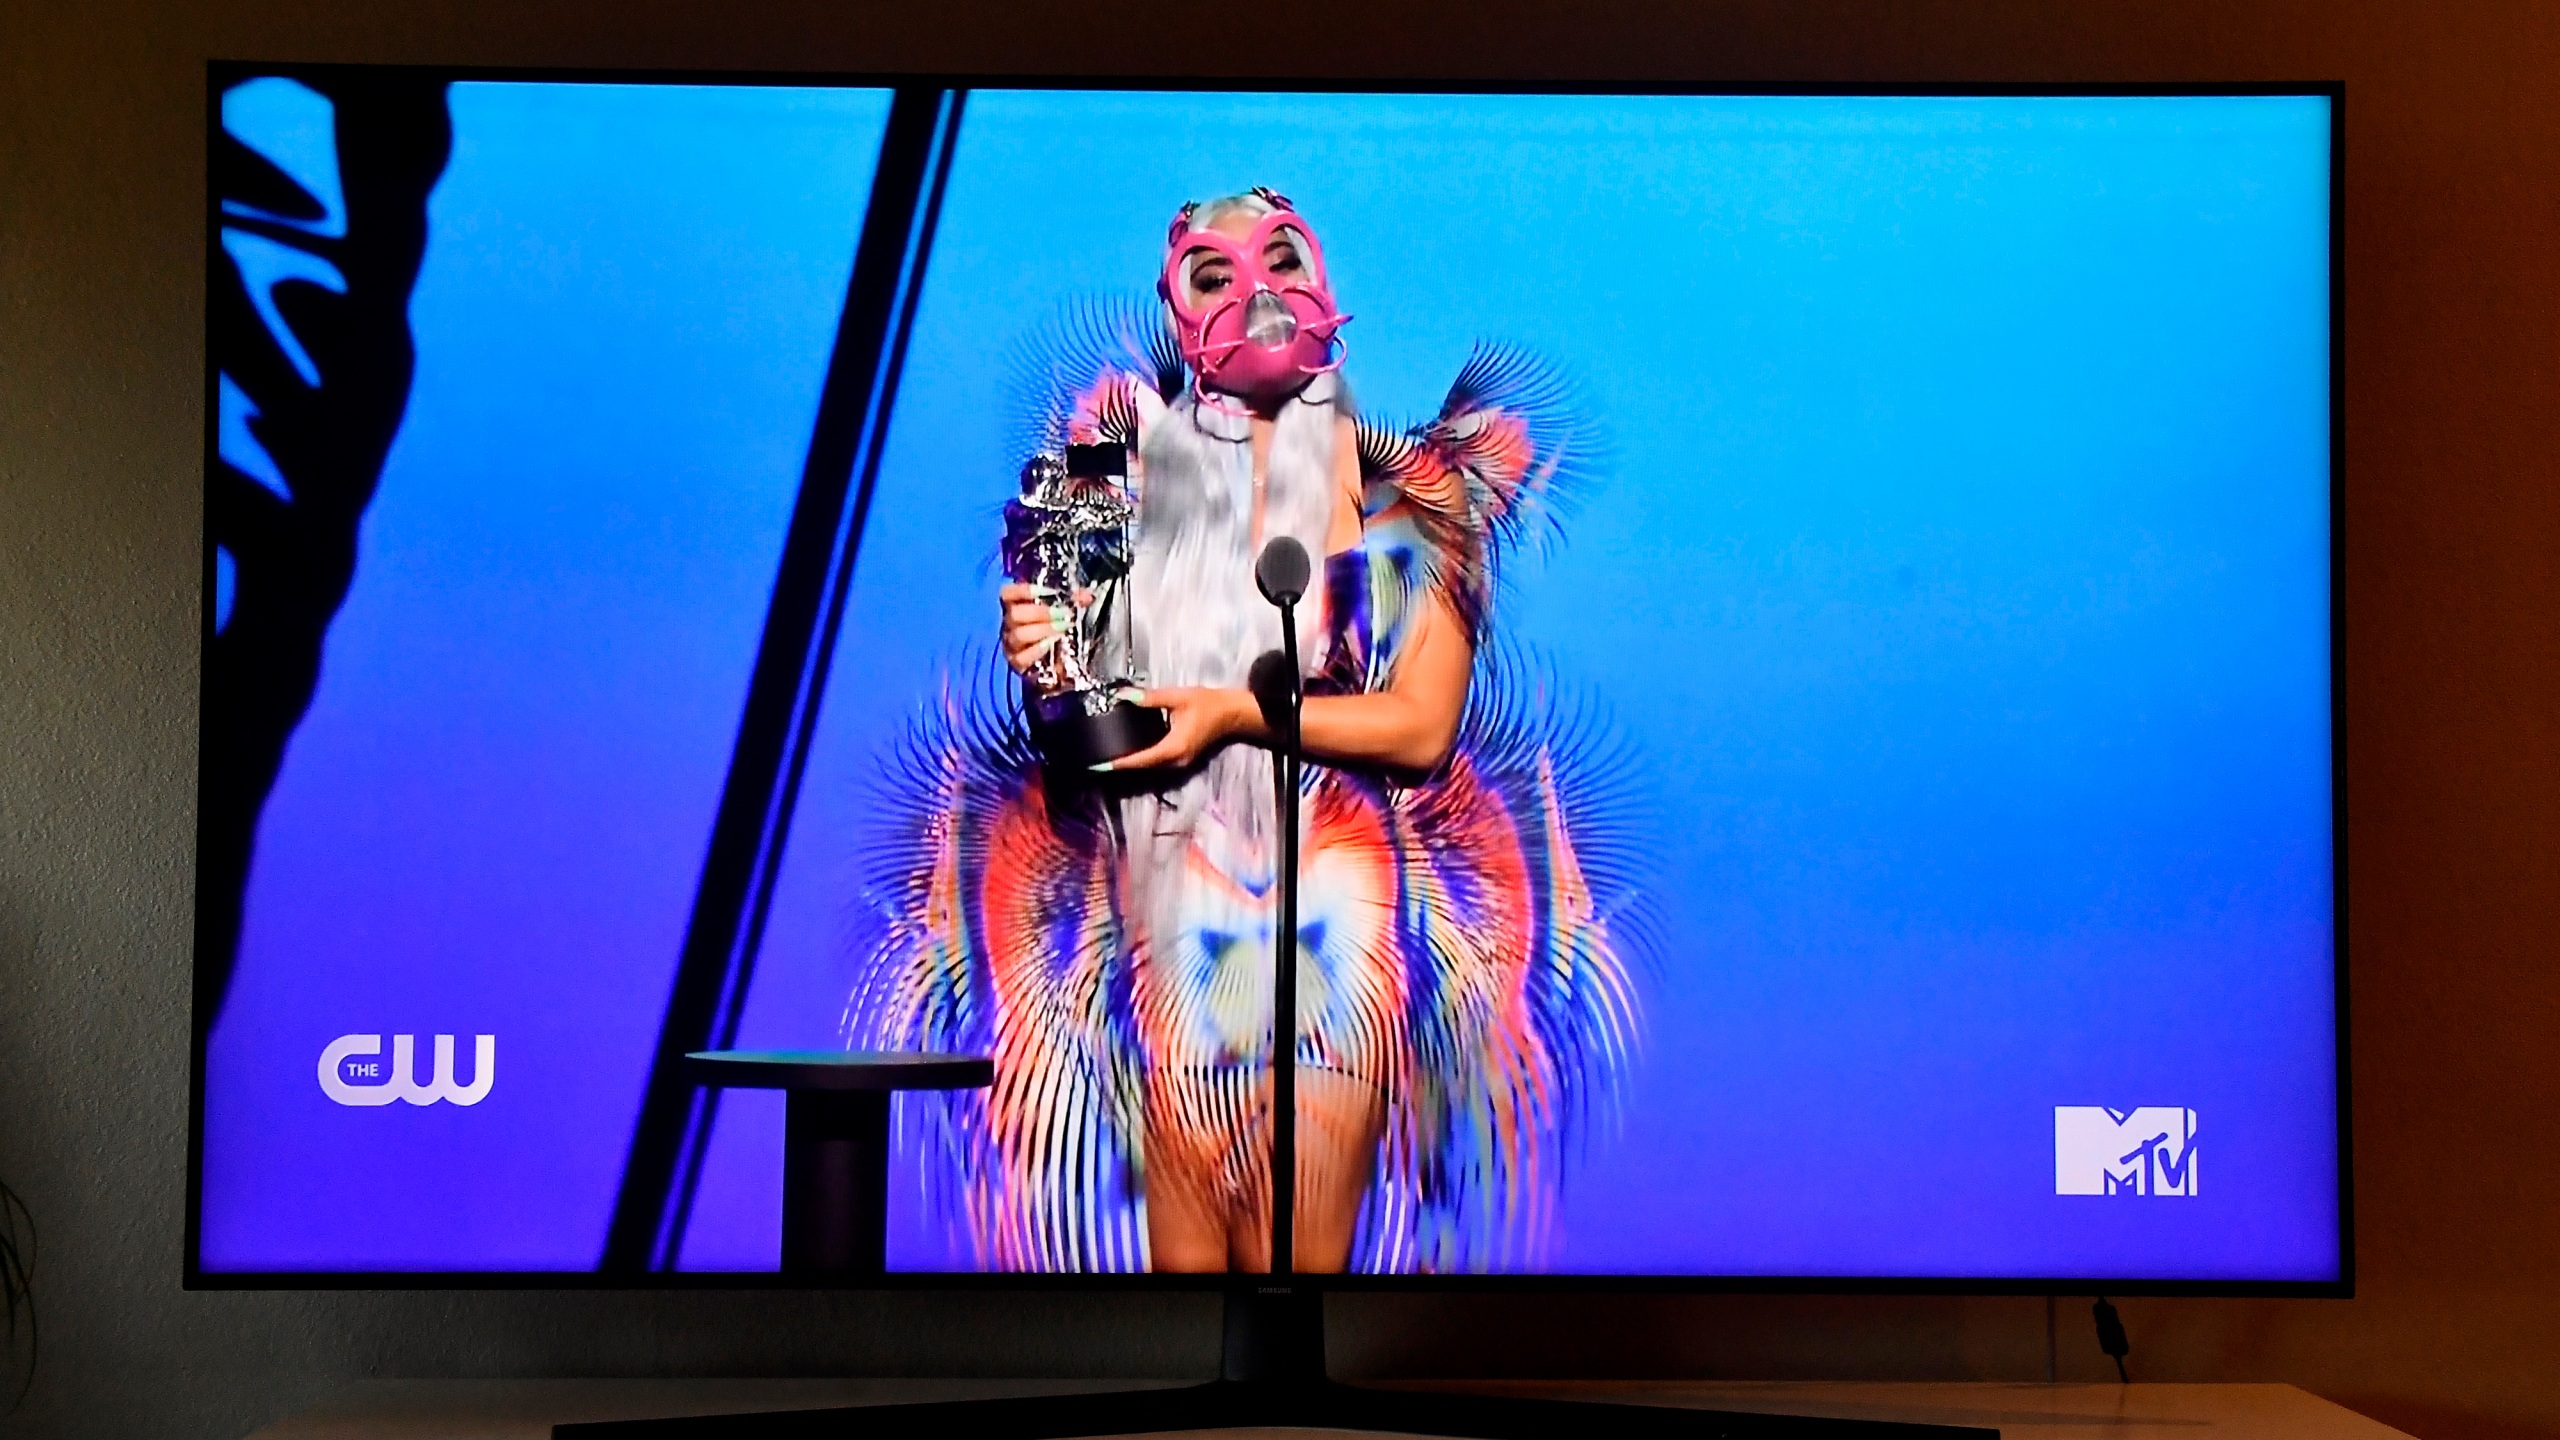 """In this photo illustration, Lady Gaga accepts the Best Collaboration award for """"Rain on Me"""" with Ariana Grande, viewed on a television screen, during the 2020 MTV Video Music Awards broadcast on Aug. 30, 2020 in New York City. (Frazer Harrison/Getty Images)"""